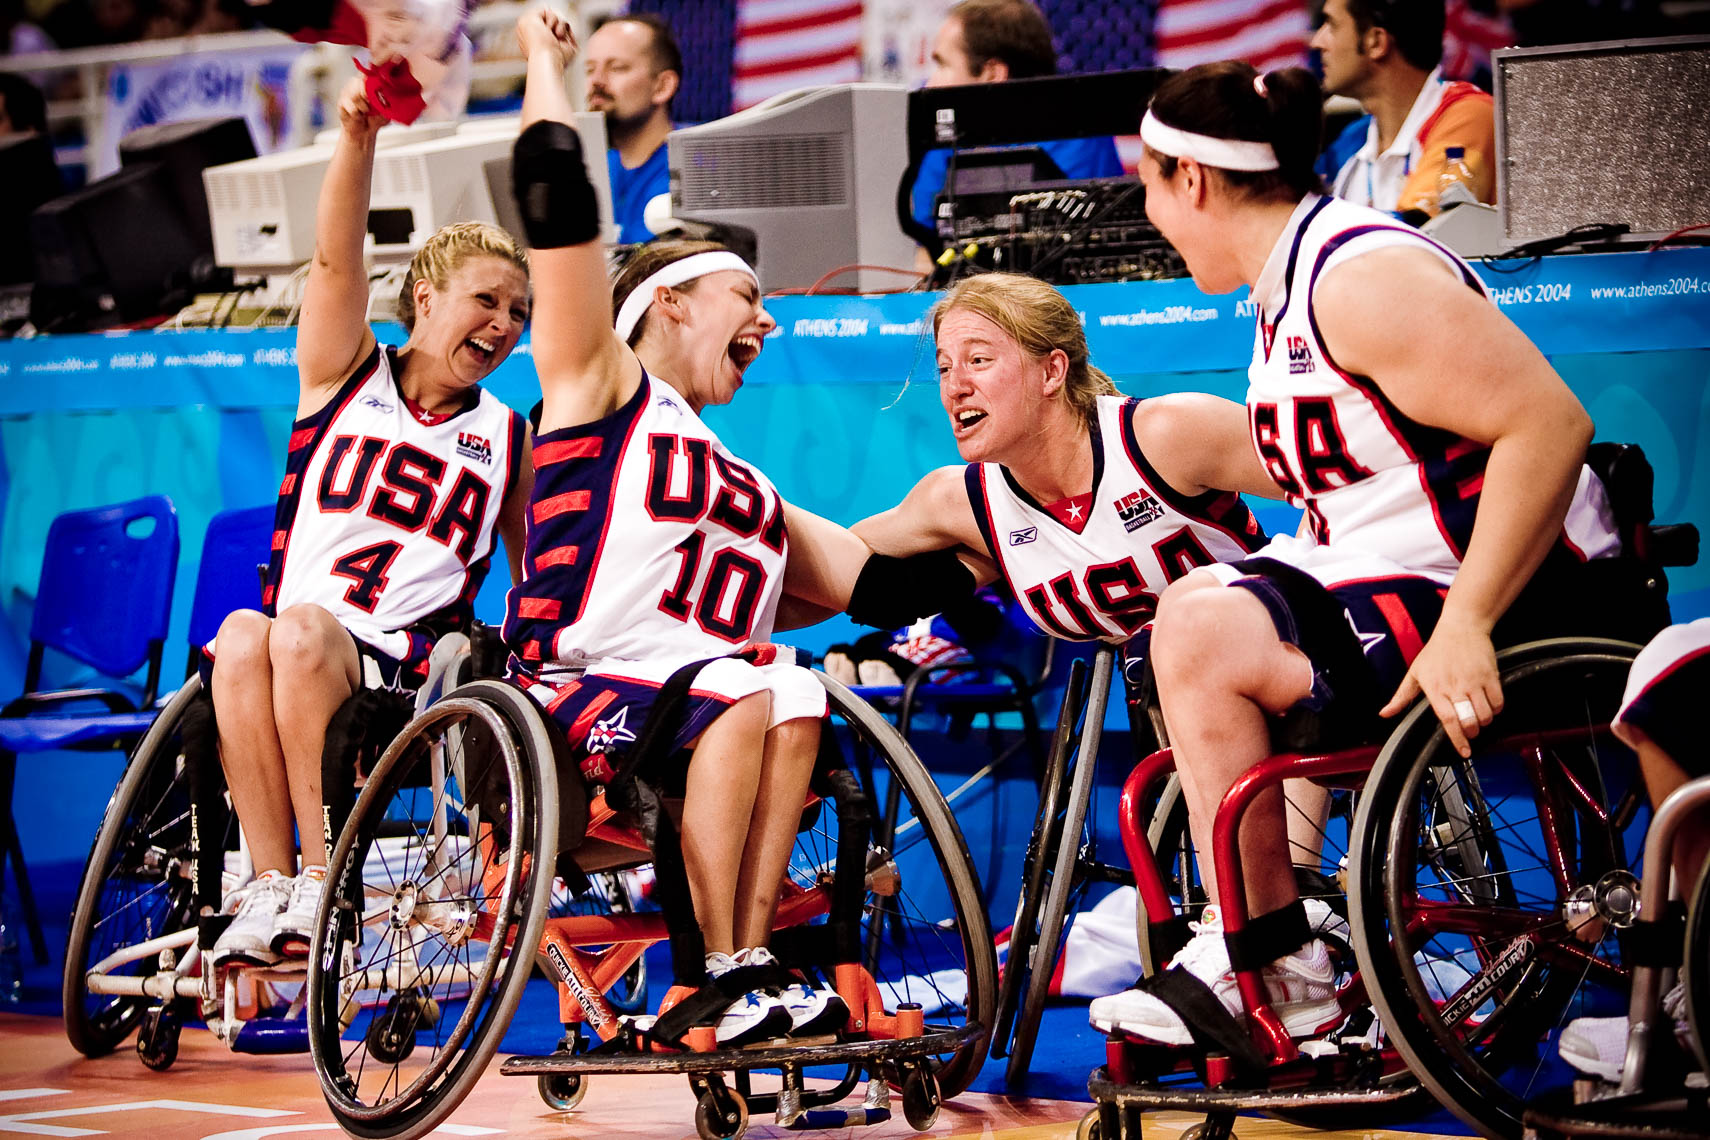 Paralympic Celebration USA Women